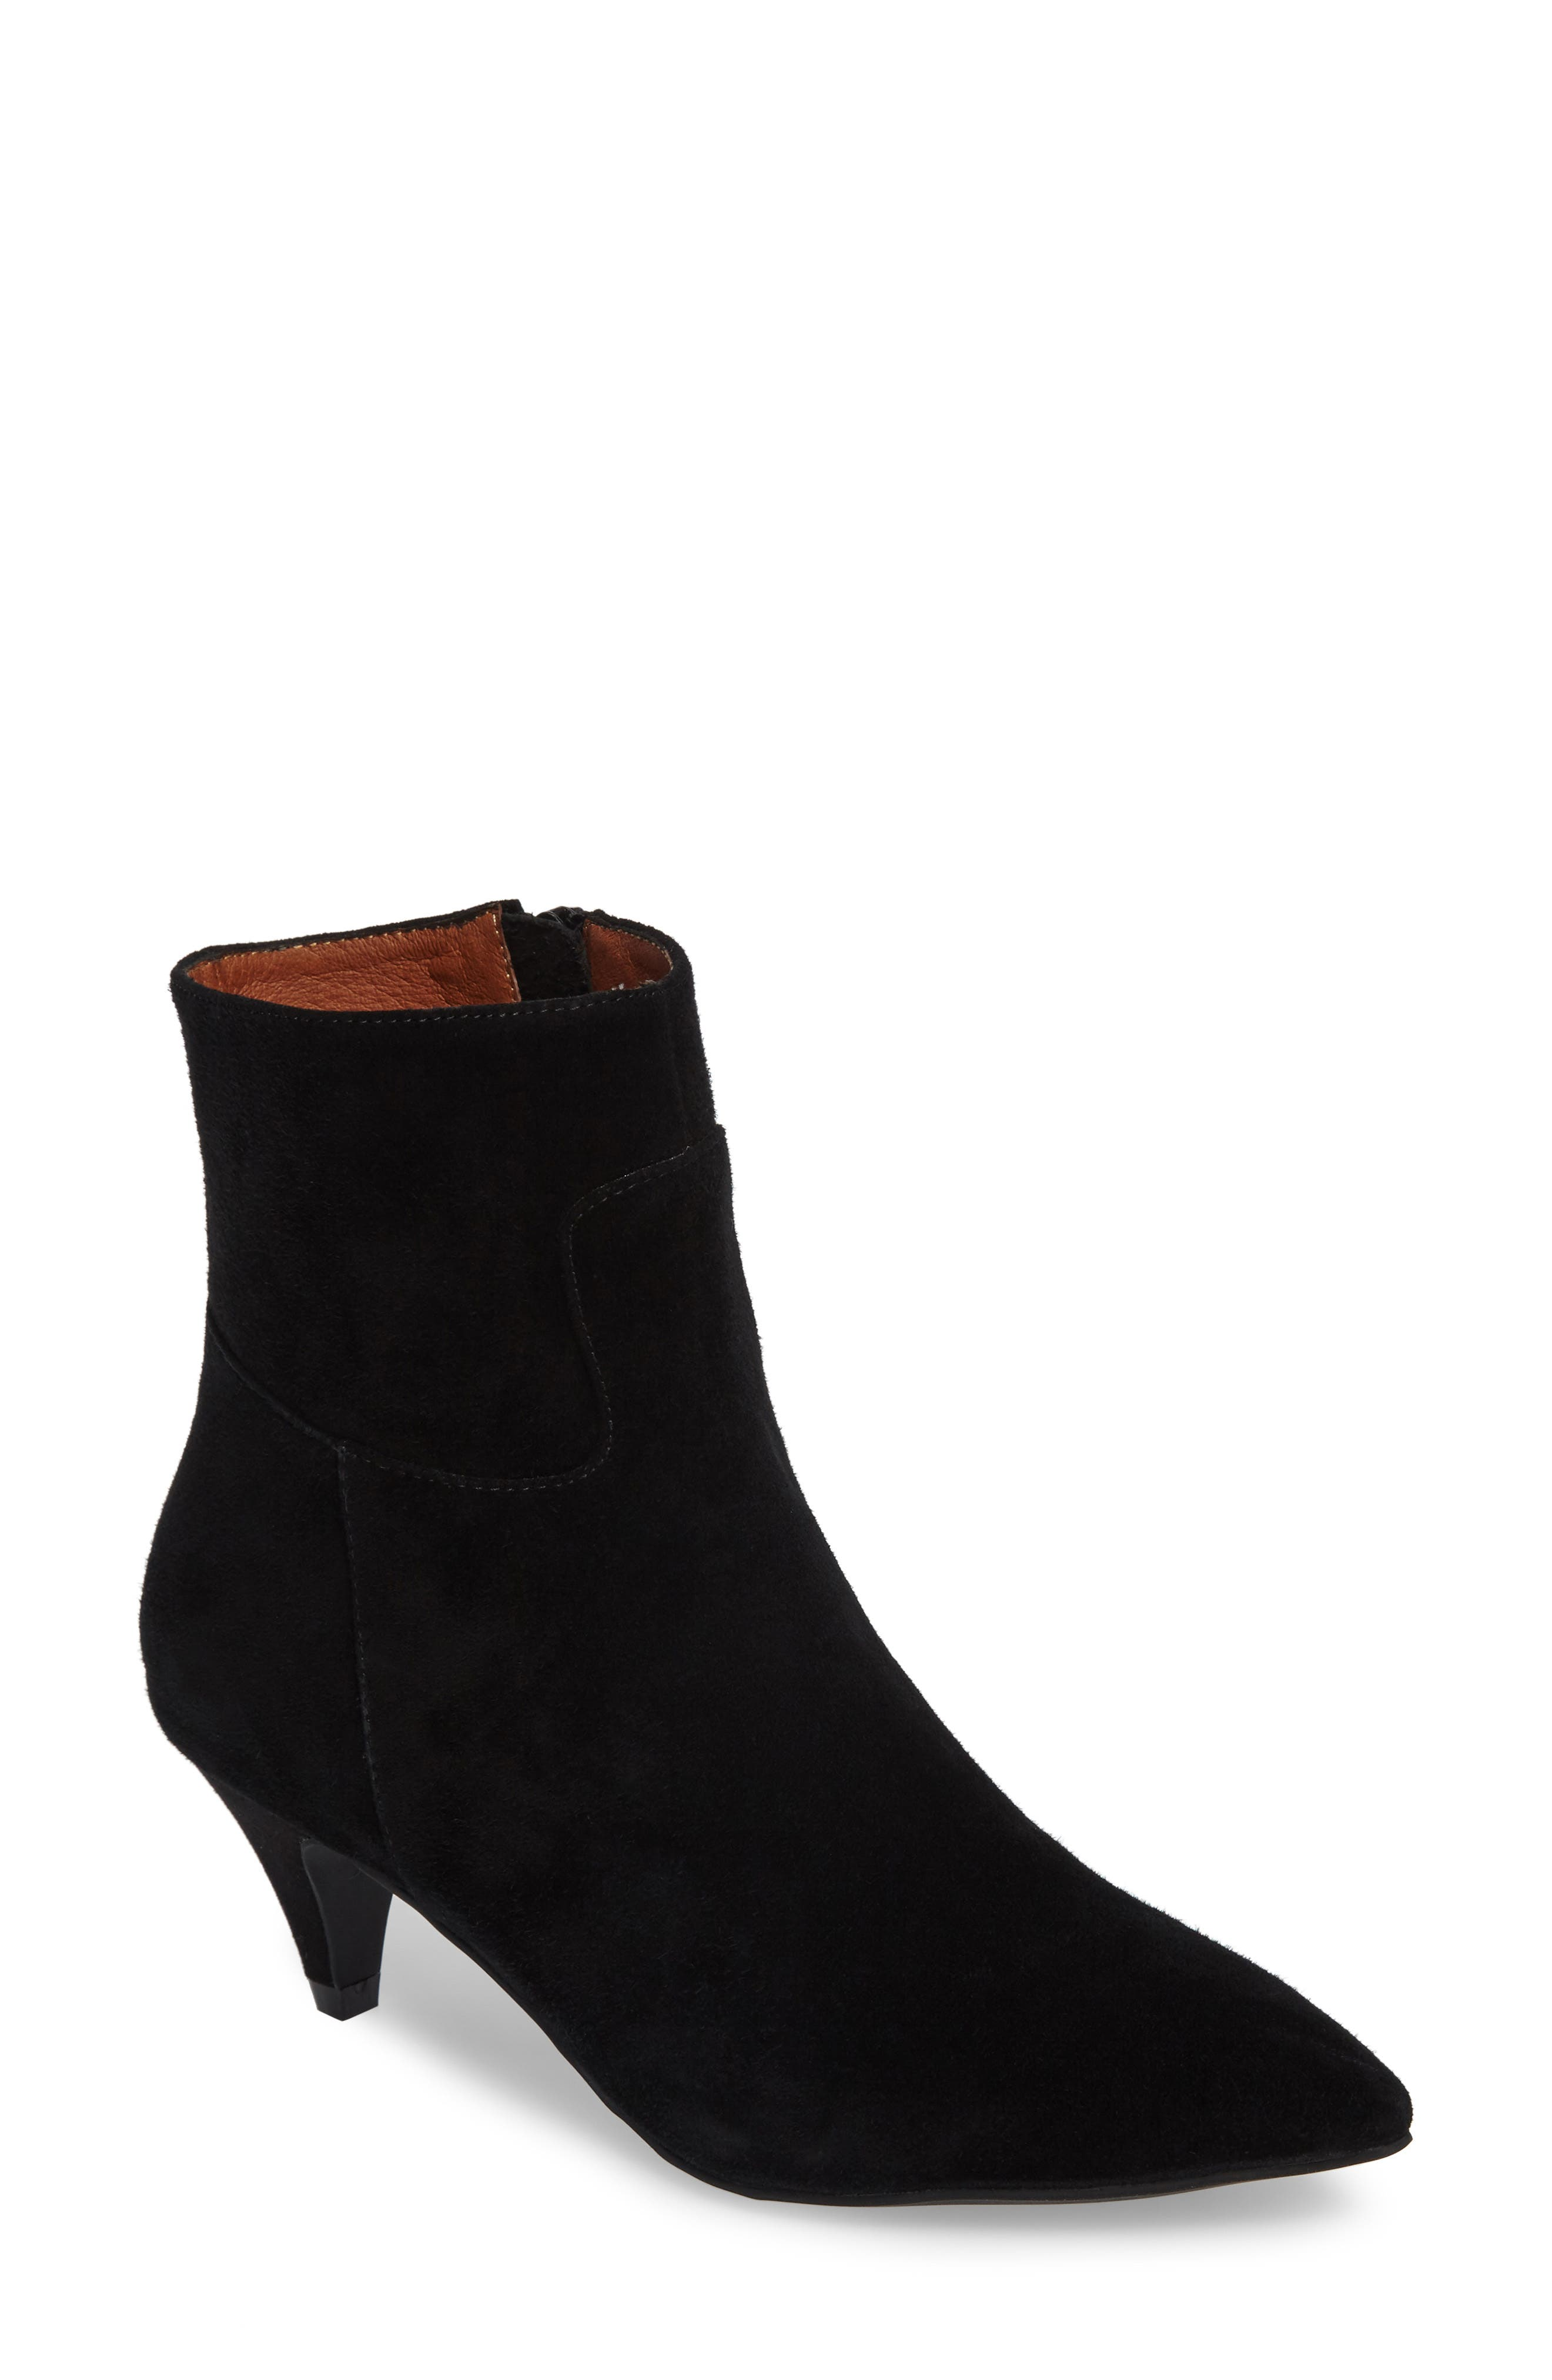 Muse Bootie,                             Main thumbnail 1, color,                             005